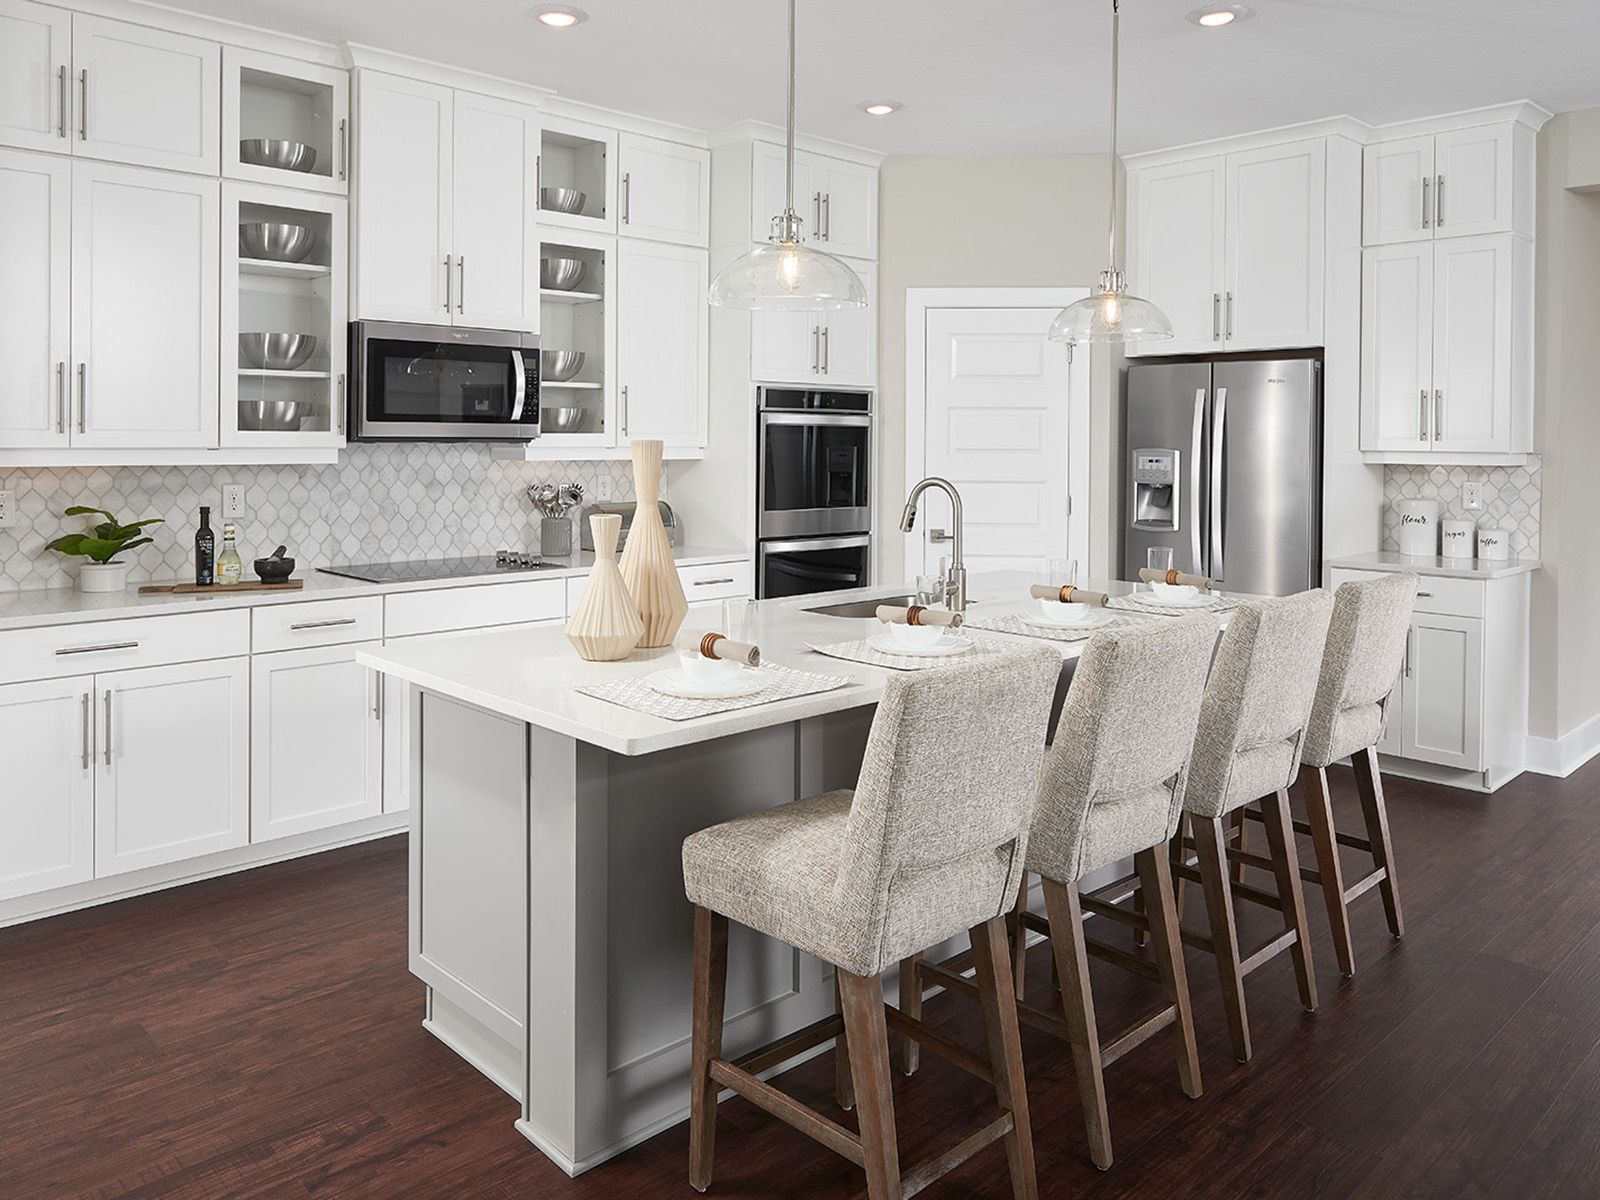 Kitchen featured in the Pomelo - Meritage Homes By Crown Community Development